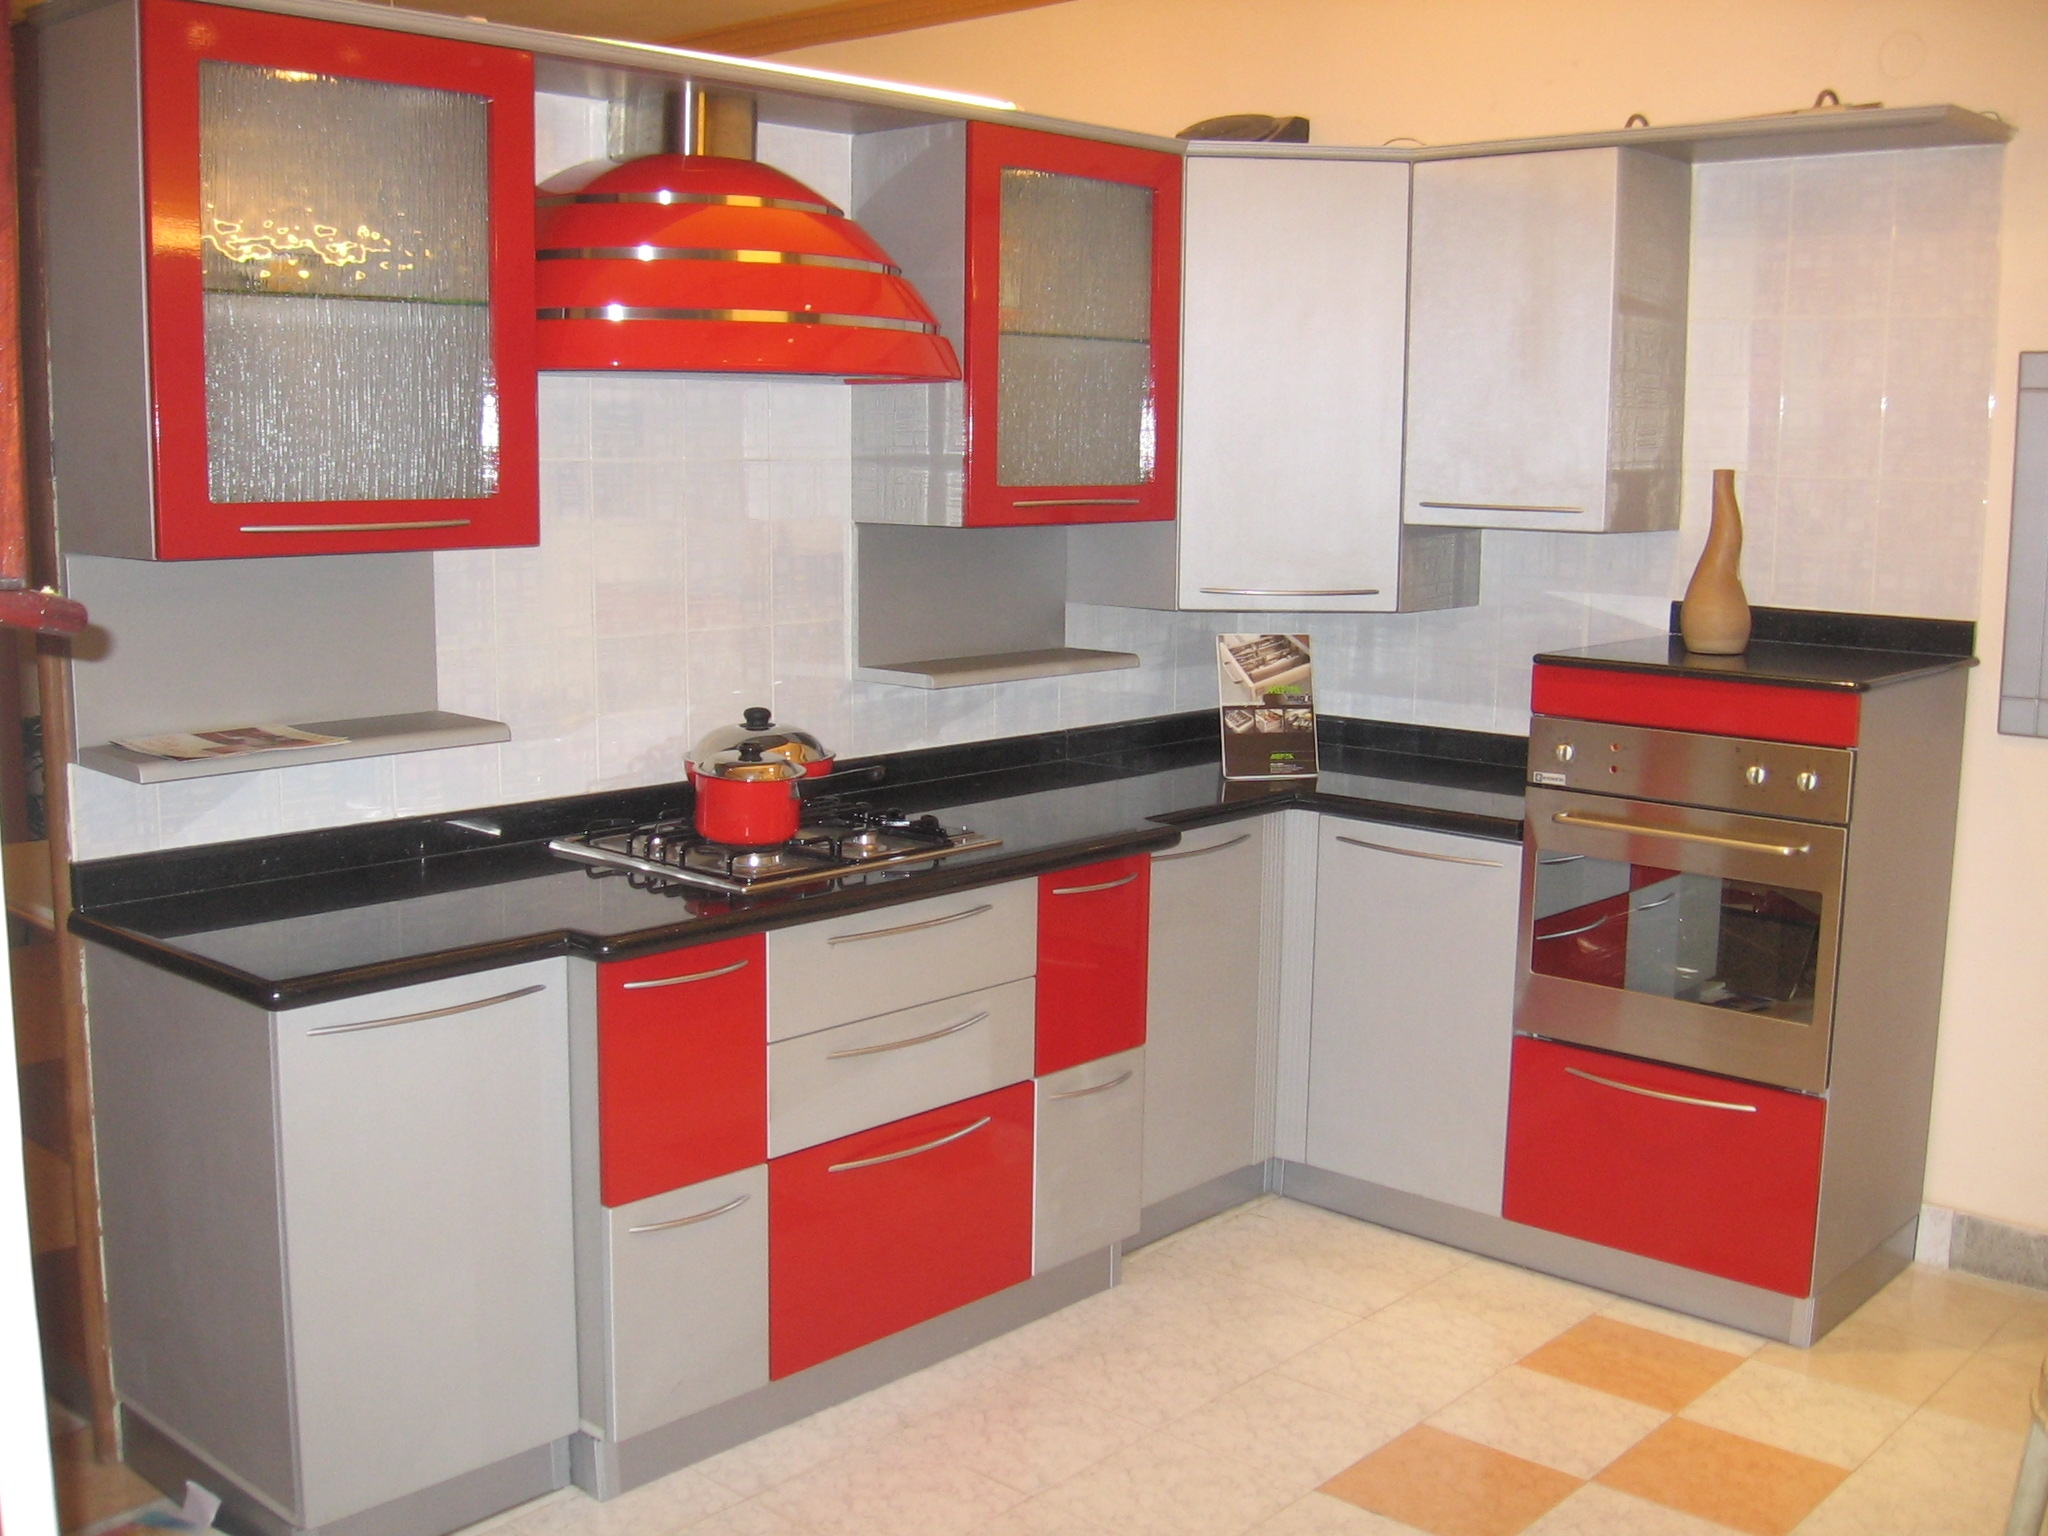 Modular Kitchen Cabinet Systems